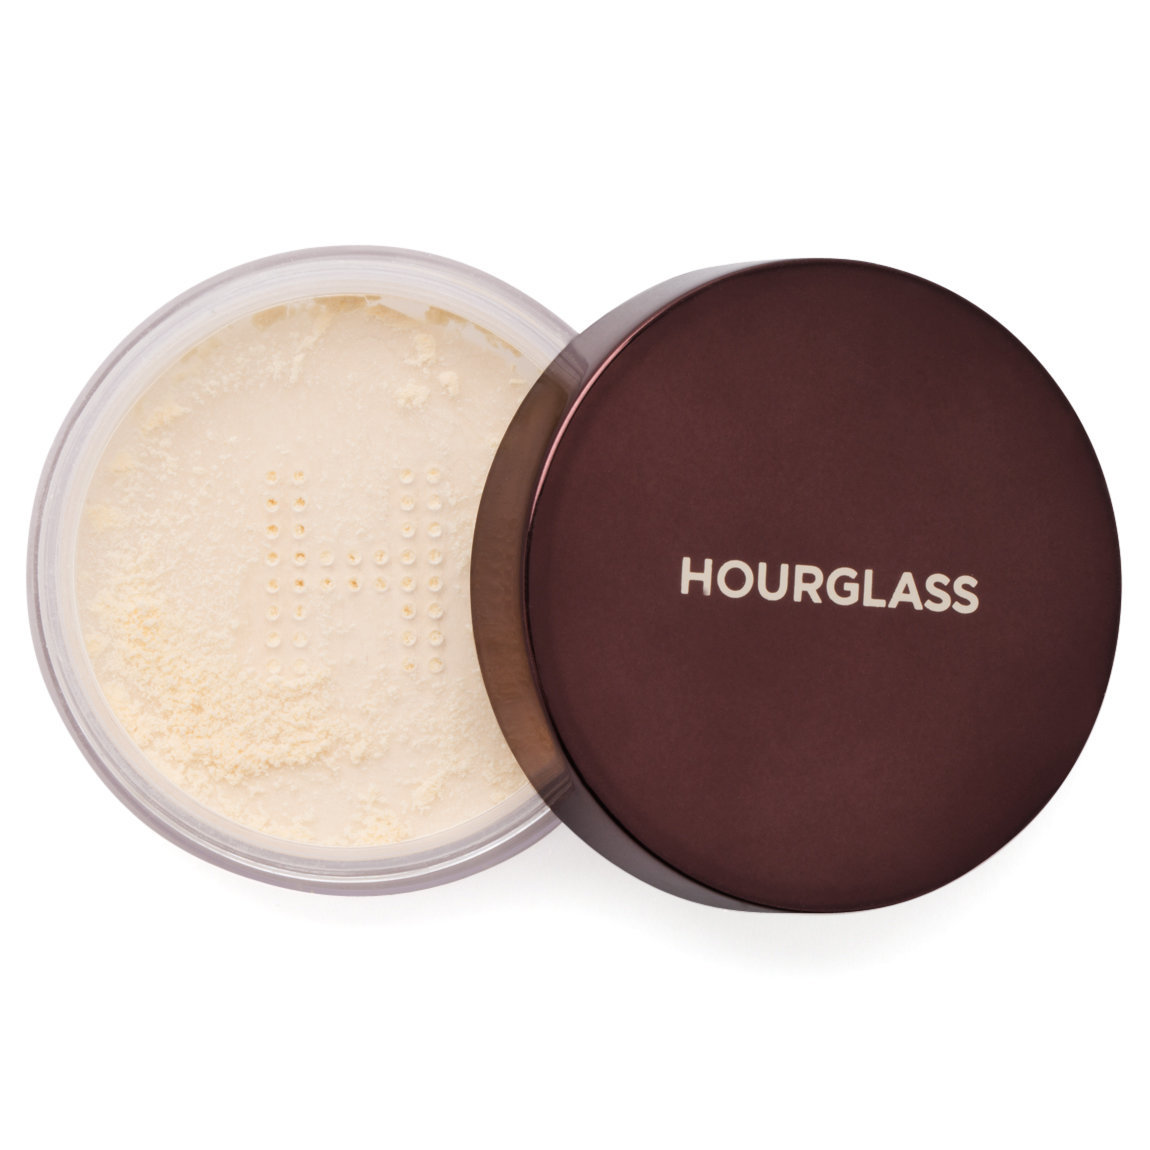 Hourglass Veil Translucent Setting Powder 0.07 oz alternative view 1 - product swatch.